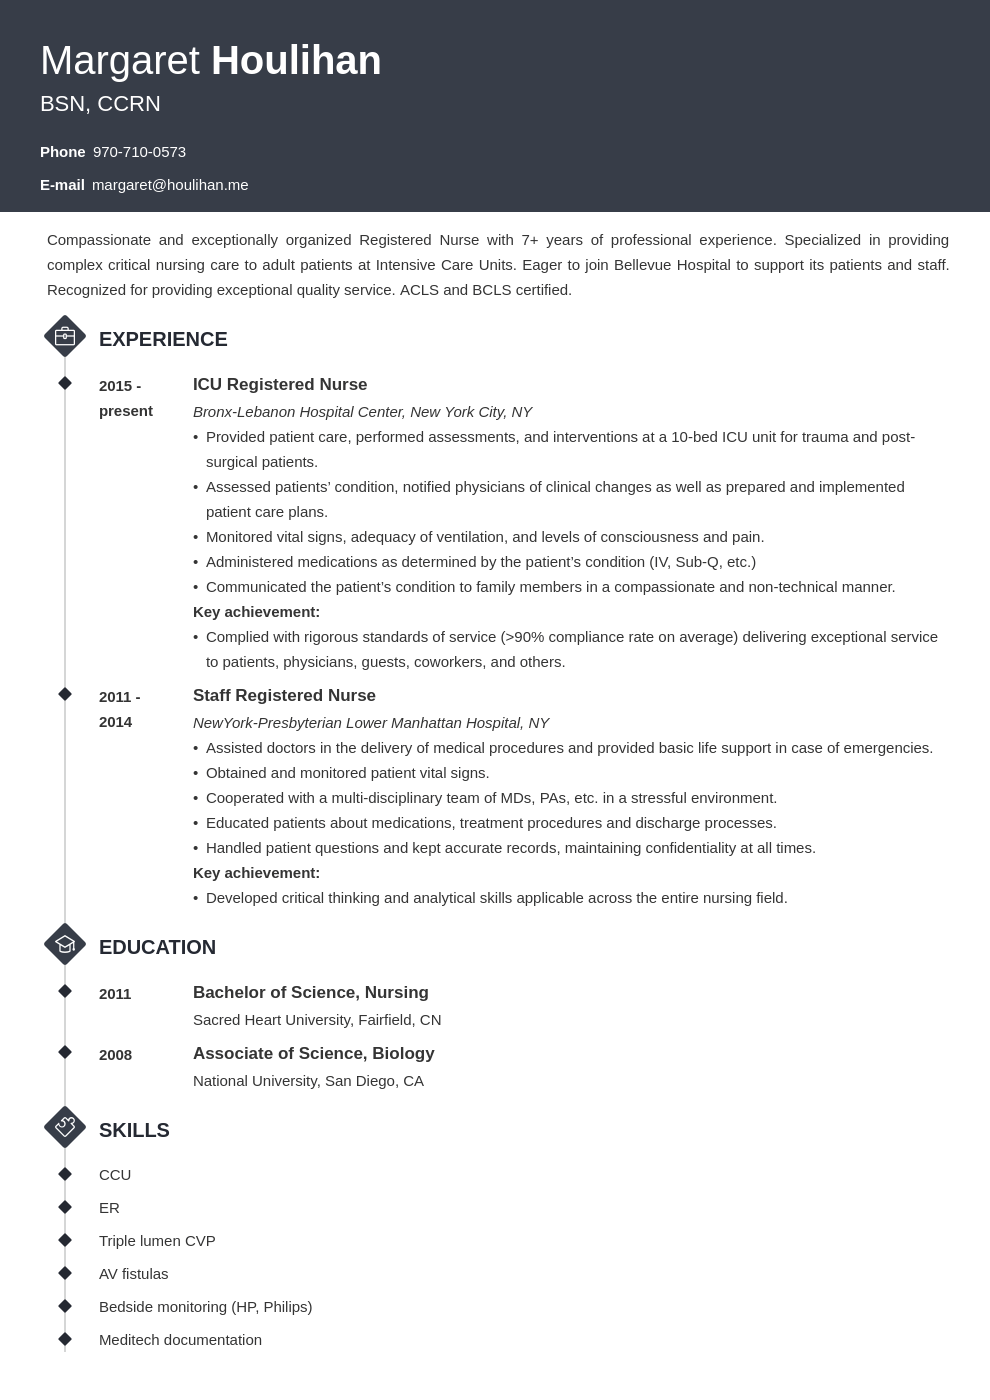 icu nurse resume example template diamond